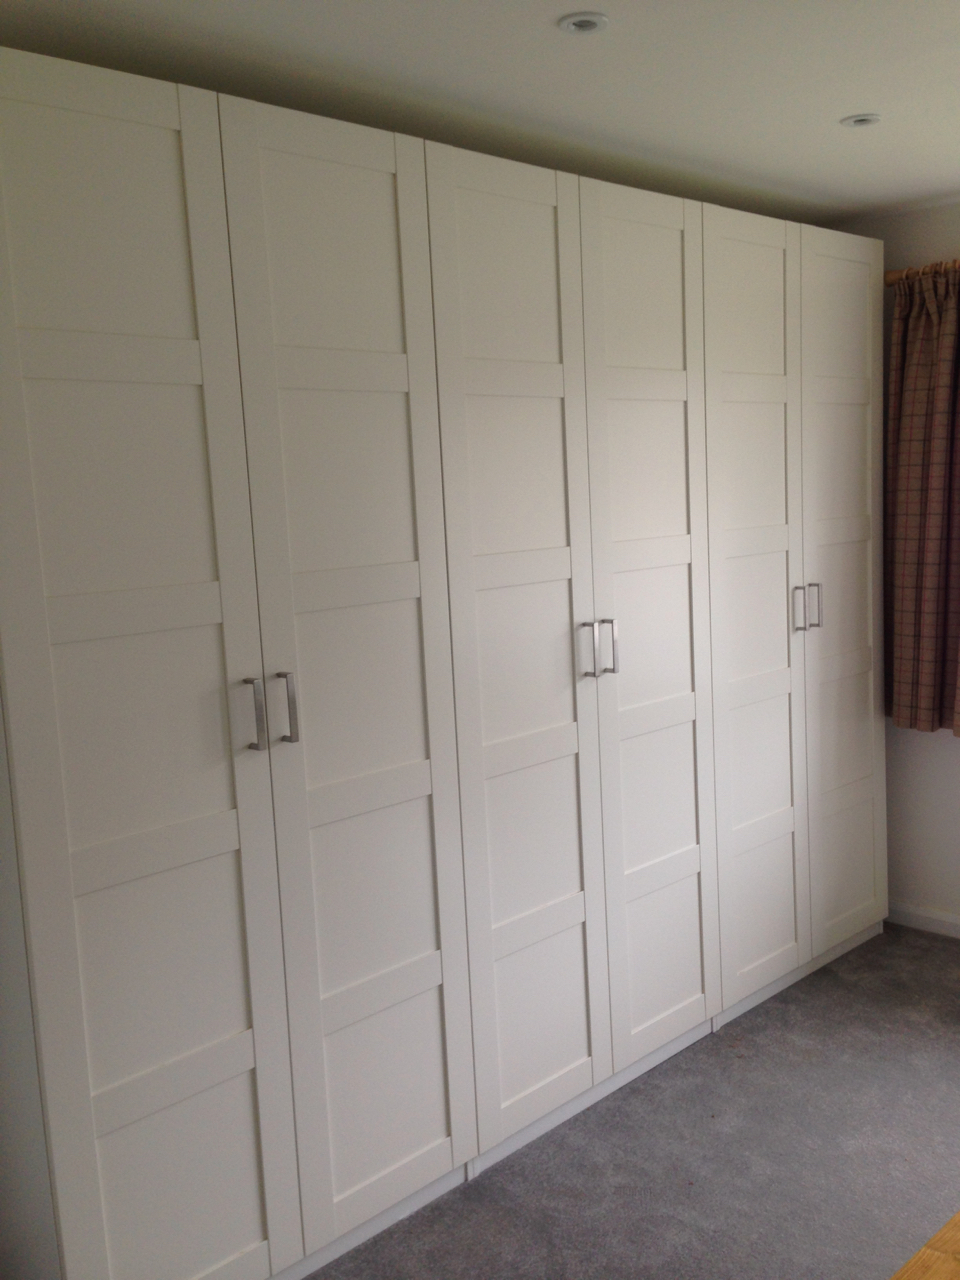 3m run of Ikea PAX hinged wardrobes assembled by www.norwichflatpack.co.uk